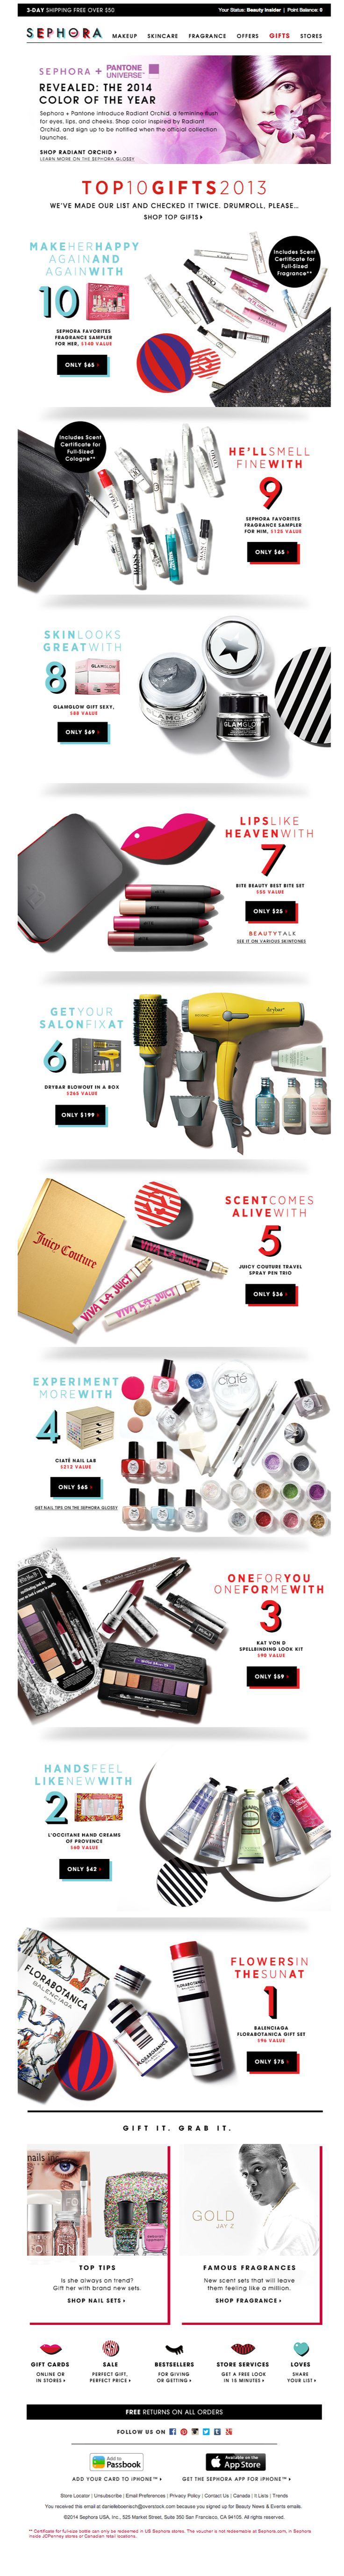 Sephora email top gifts 2013